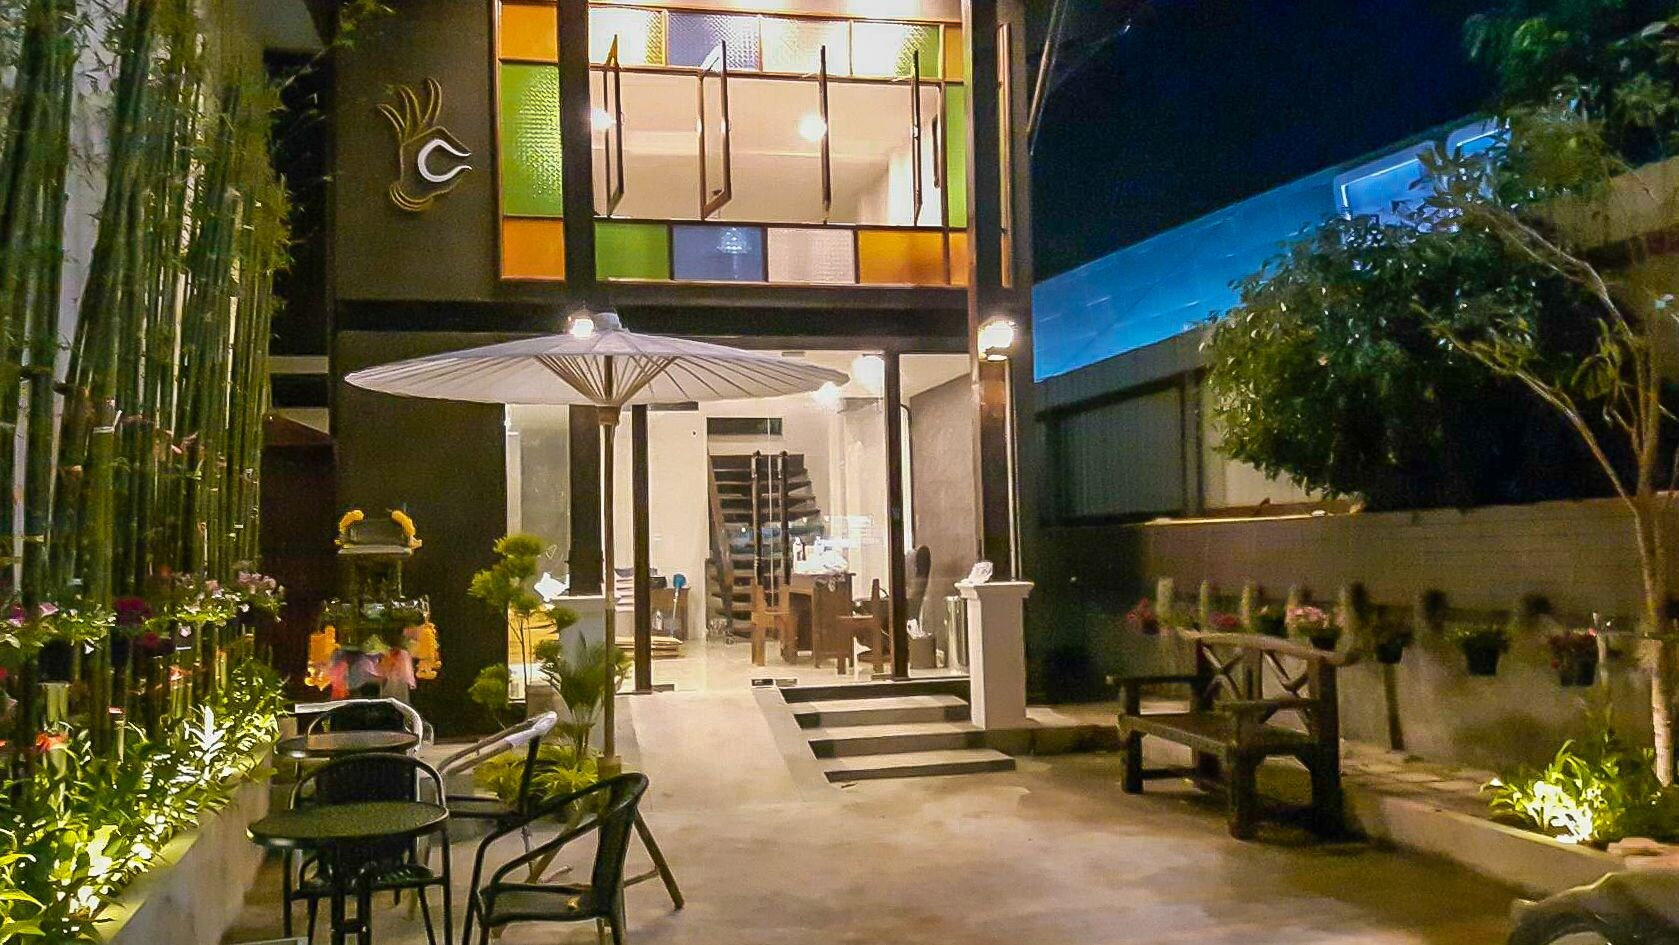 C Hotel Boutique and Comfort, Muang Chiang Mai